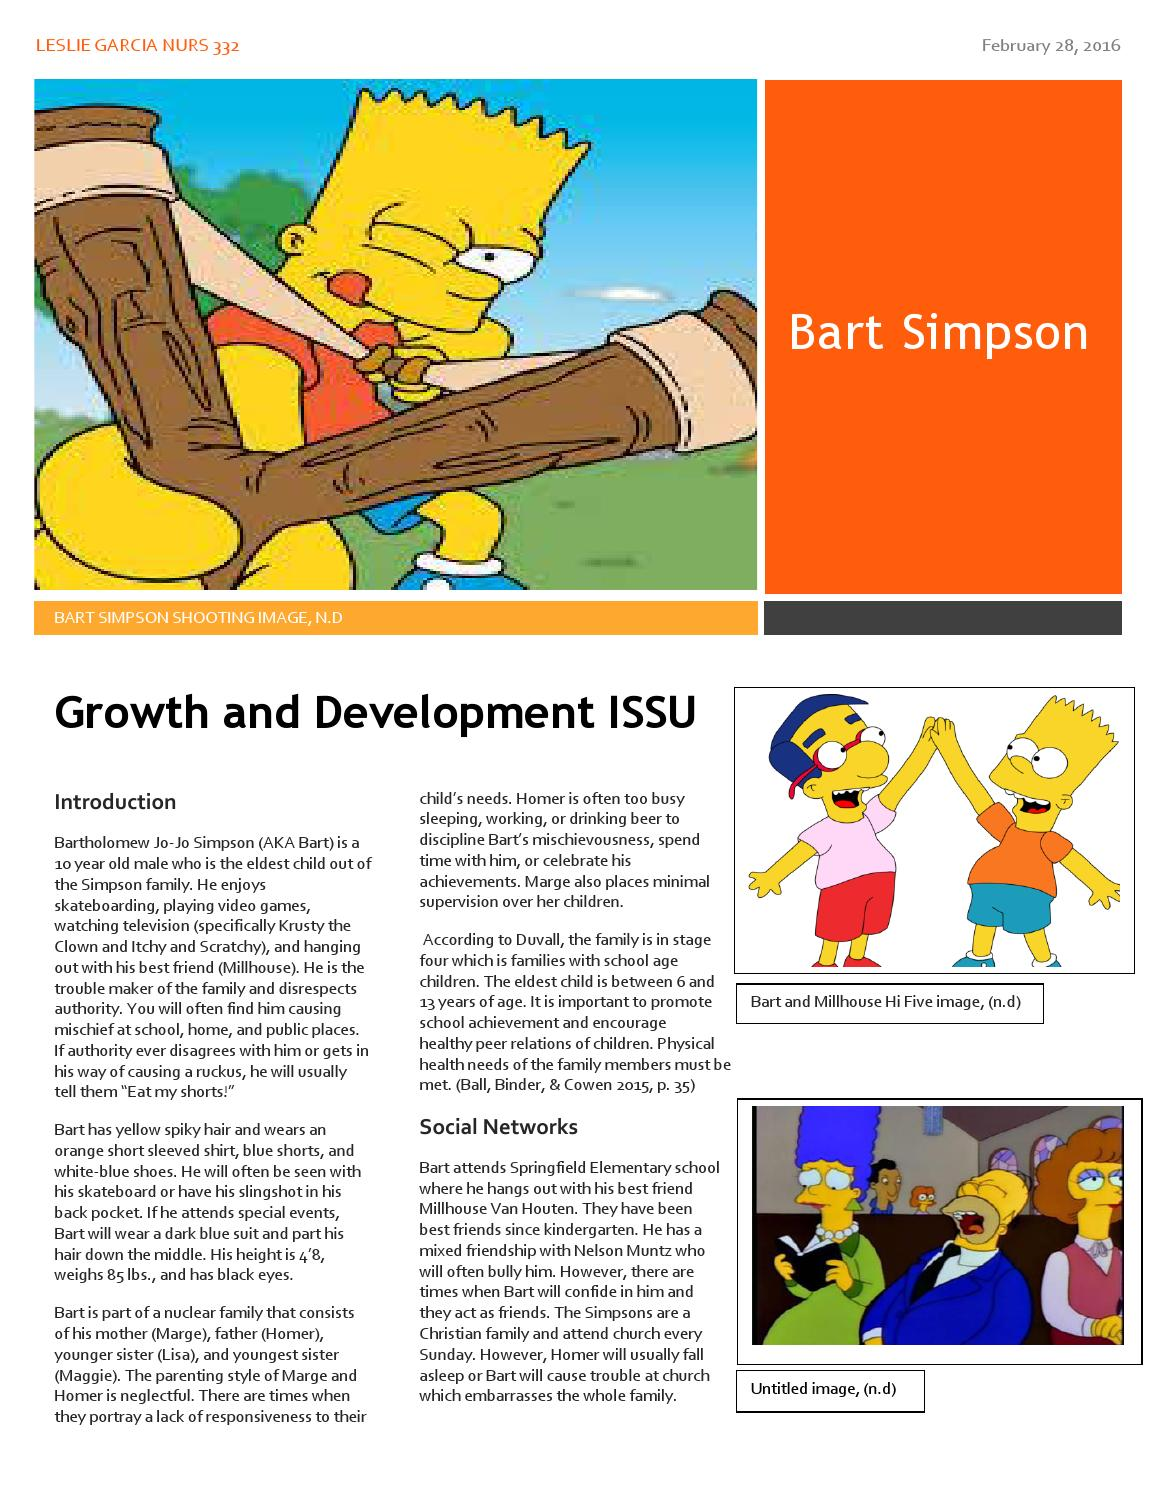 Growth&development bart pdf by Leslie Garcia - issuu